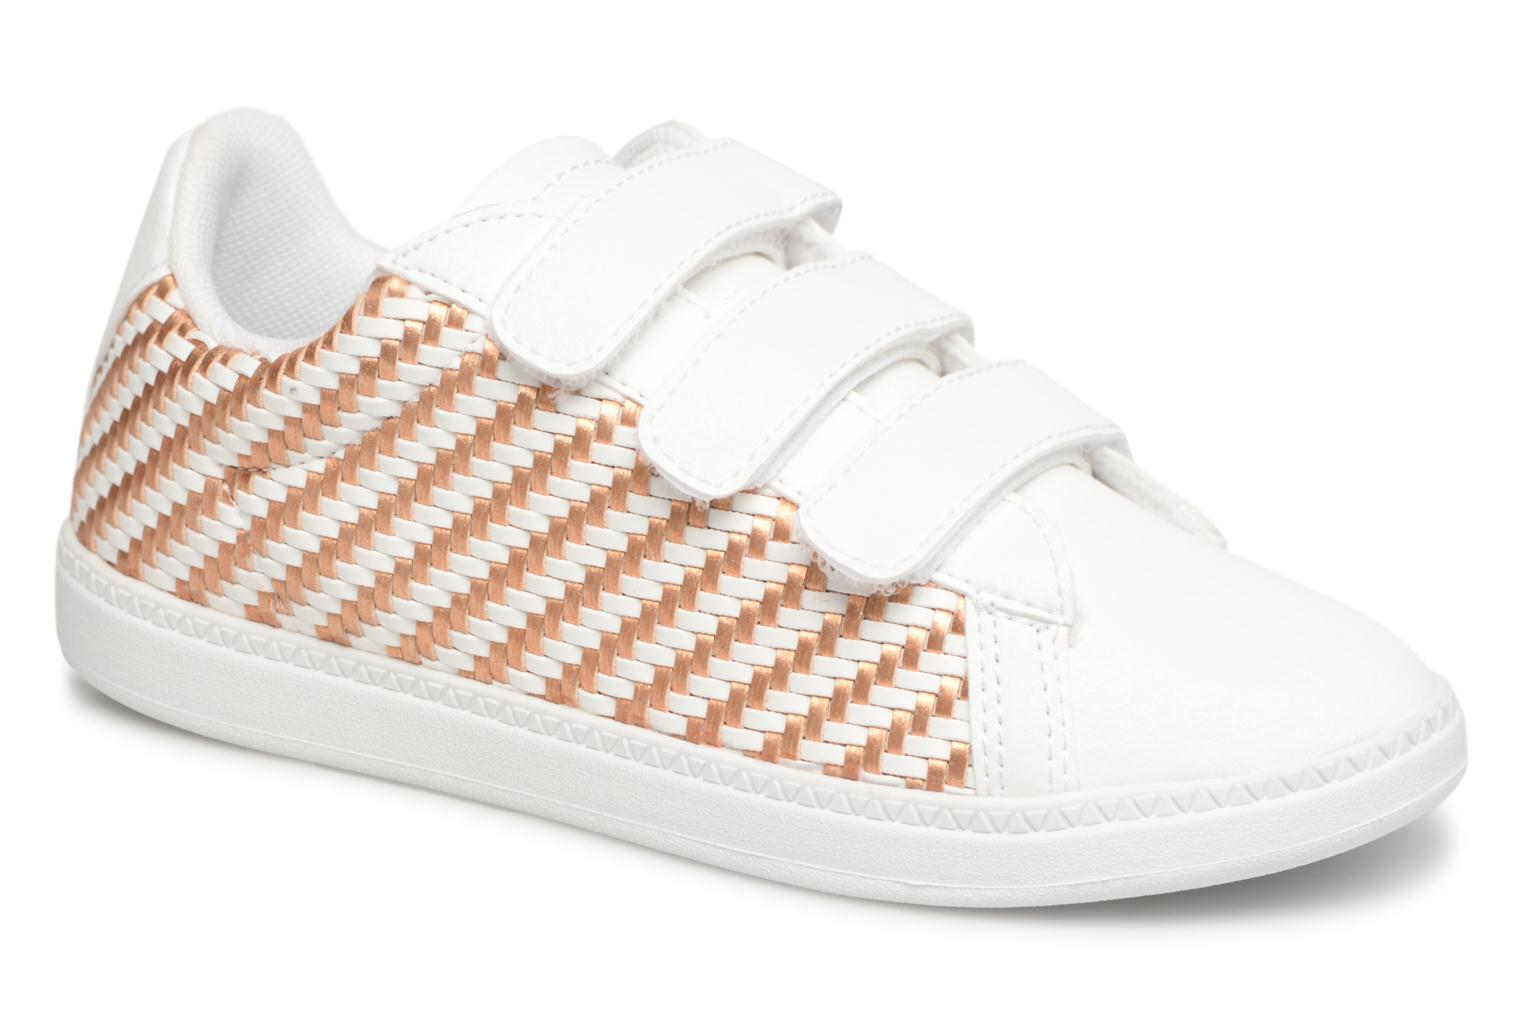 Sneakers Courtset PS Woven by Le Coq Sportif